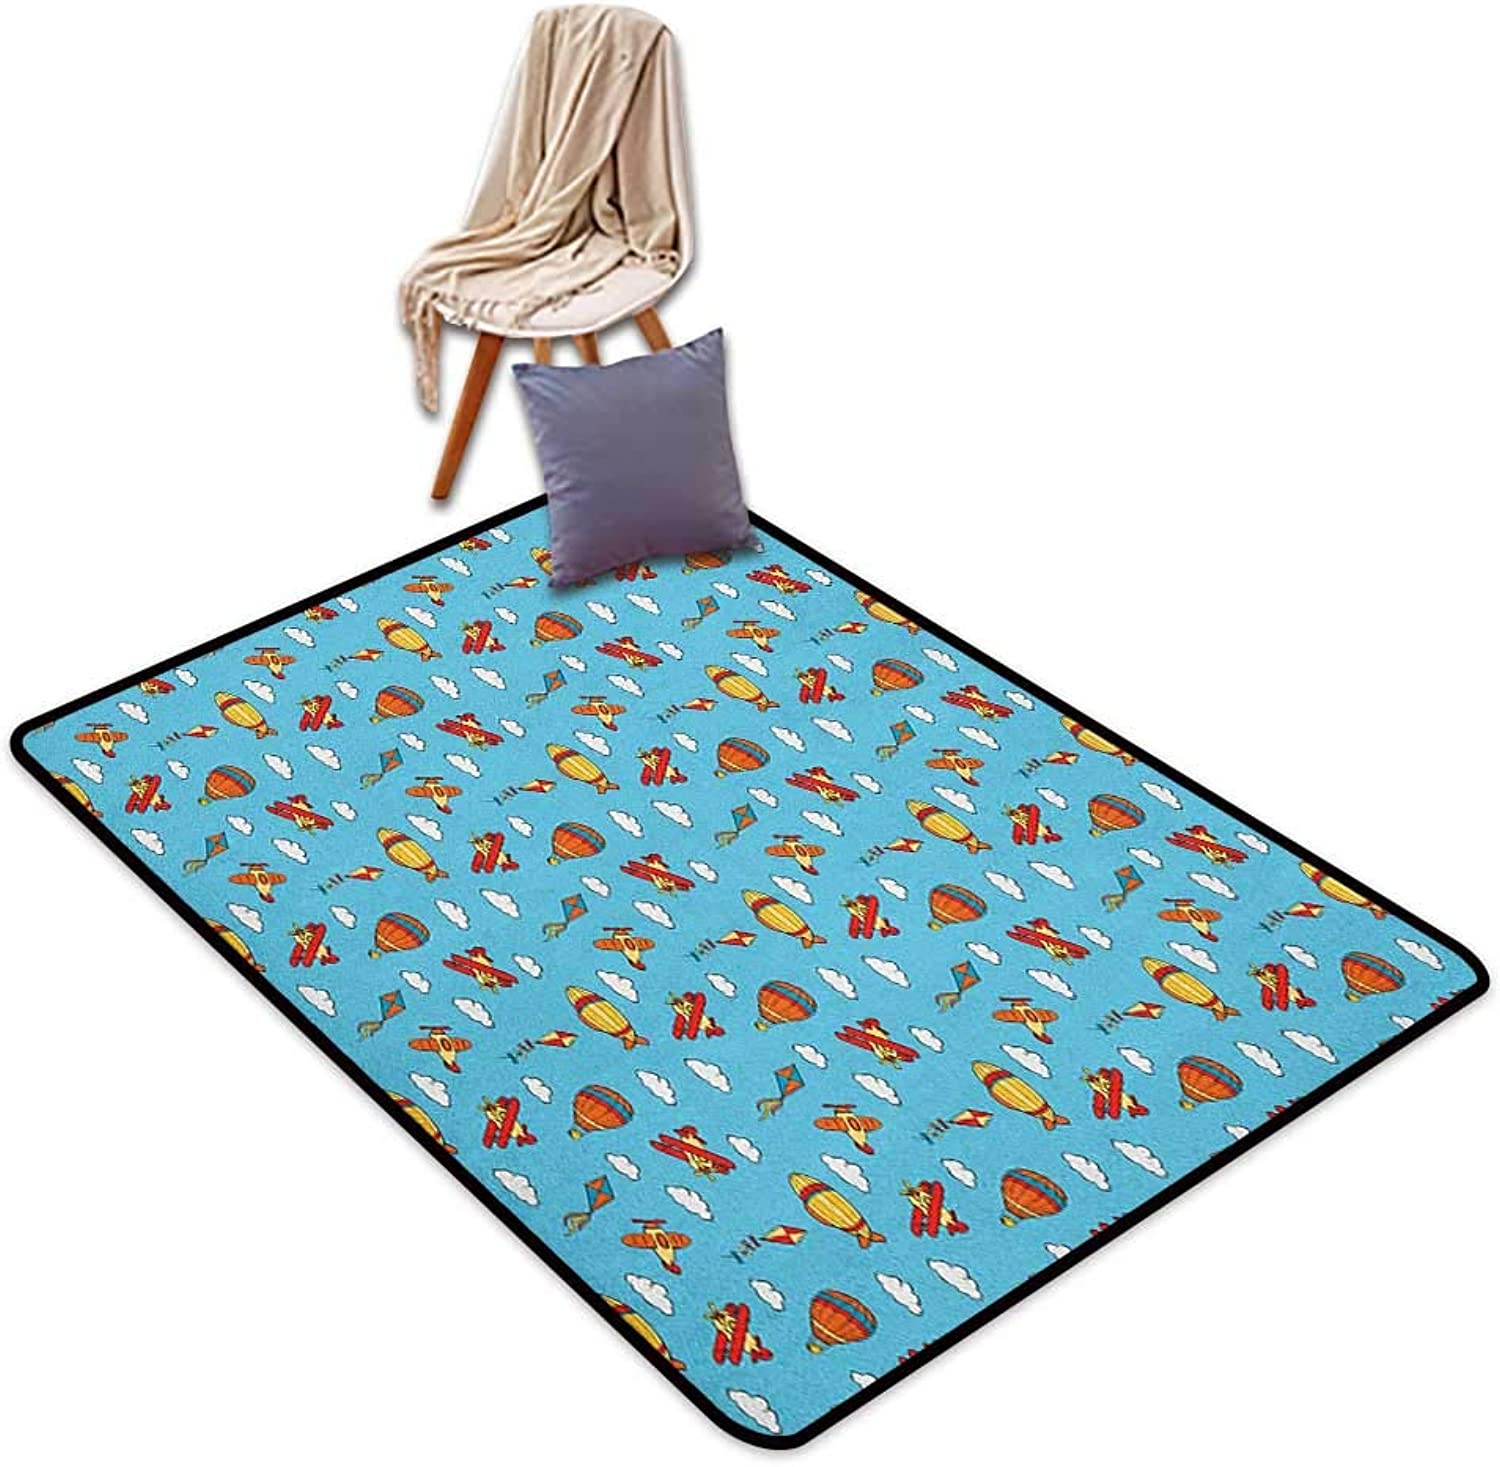 Non-Slip Carpet Airplane colorful Air Transportation Collection with Balloons Biplanes Zeppelins and Kites Outside The Door Rug W5'xL7'